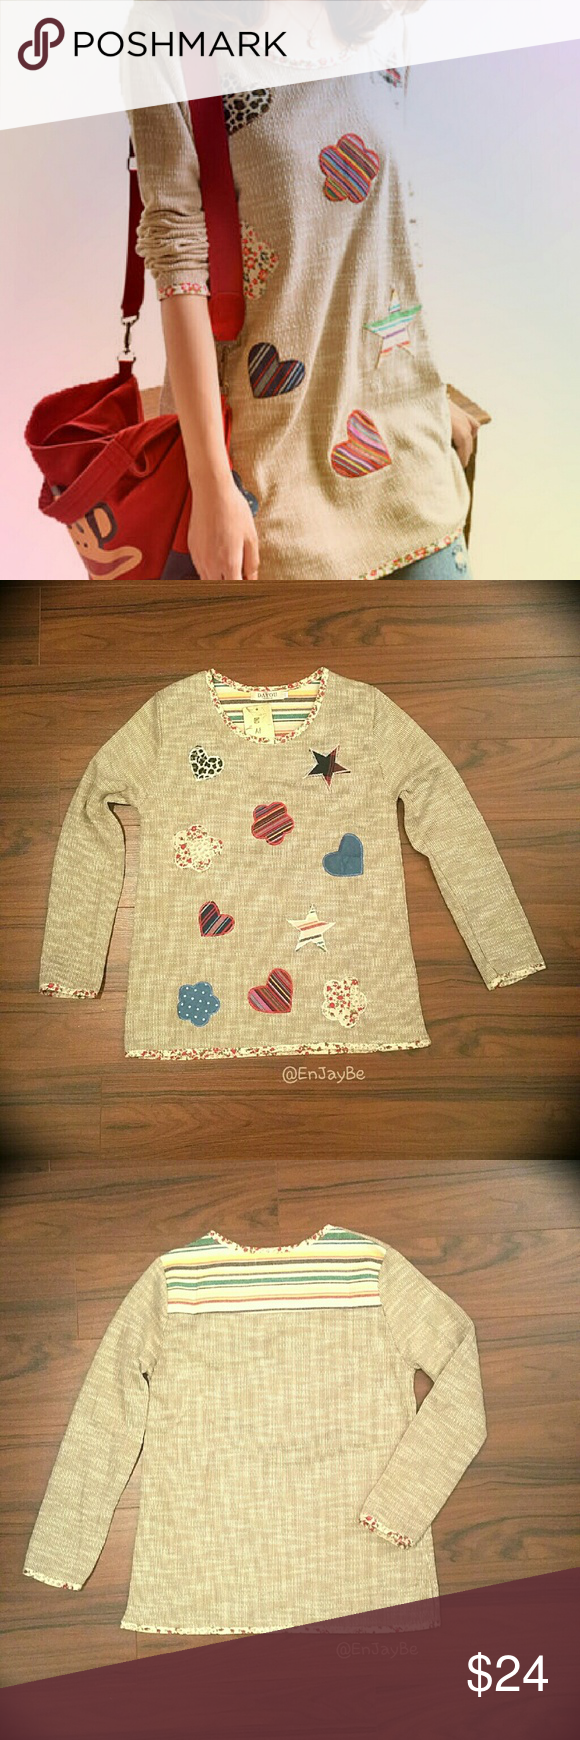 """Textured Cotton Quirky Top w/ Appliqu?s Cute, unusual top with interesting details!  Fabric looks kind of like burlap but soft to the touch inside and out.  Appliqu?s are stitched on, and complimented by floral piping around the sleeves, neckline, and hem.  Tag says """"XL"""" but has a smaller fit.  Measurements are as follows:  Bust: 37"""" Shoulder: 15"""" Hip: 40"""" Length: 25"""" Sleeve Length: 22"""" Sleeve Width: 12"""" Tops"""